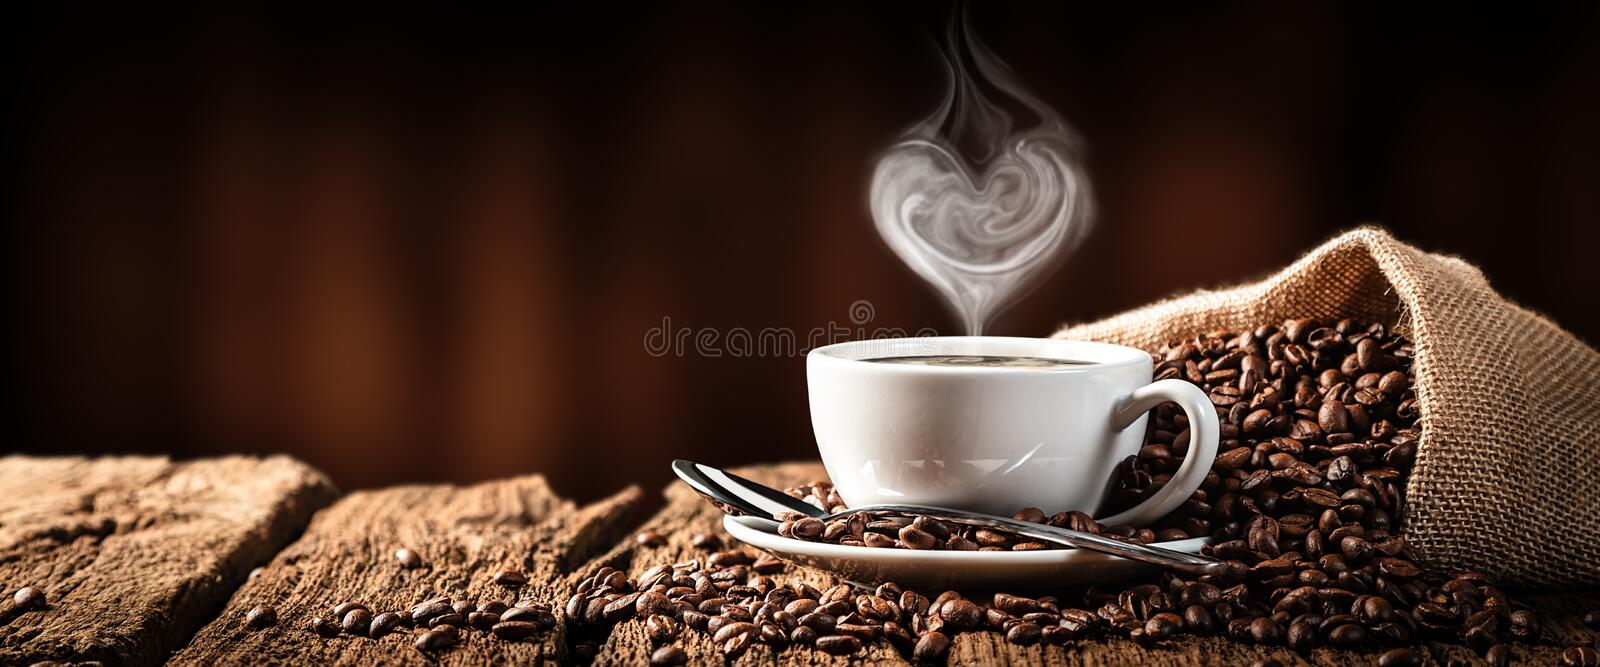 Hot Coffee With Heart Shaped Steam stock image